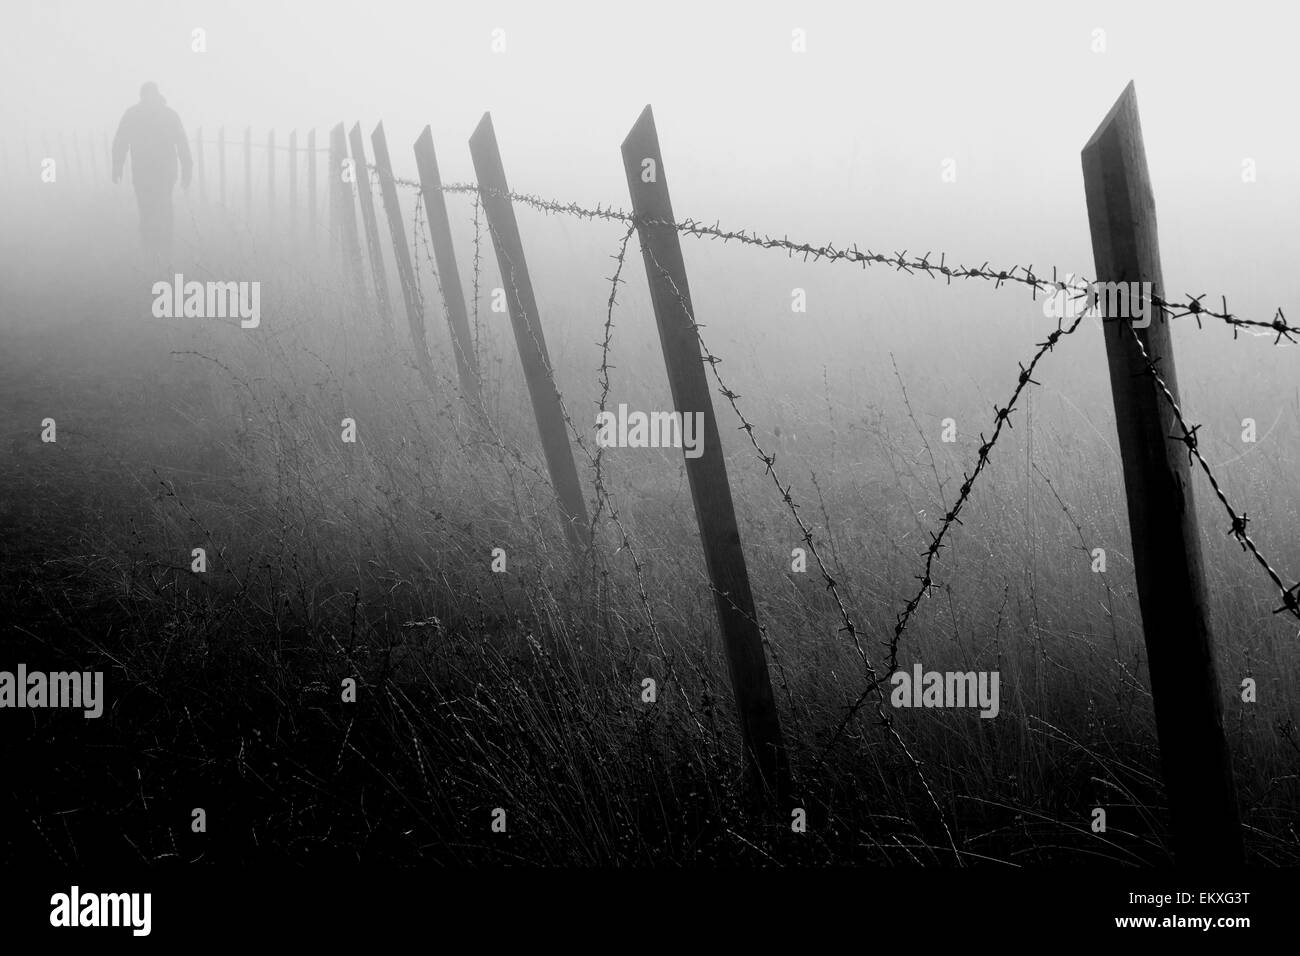 Man walking near barbed wire fence in dense fog - Stock Image